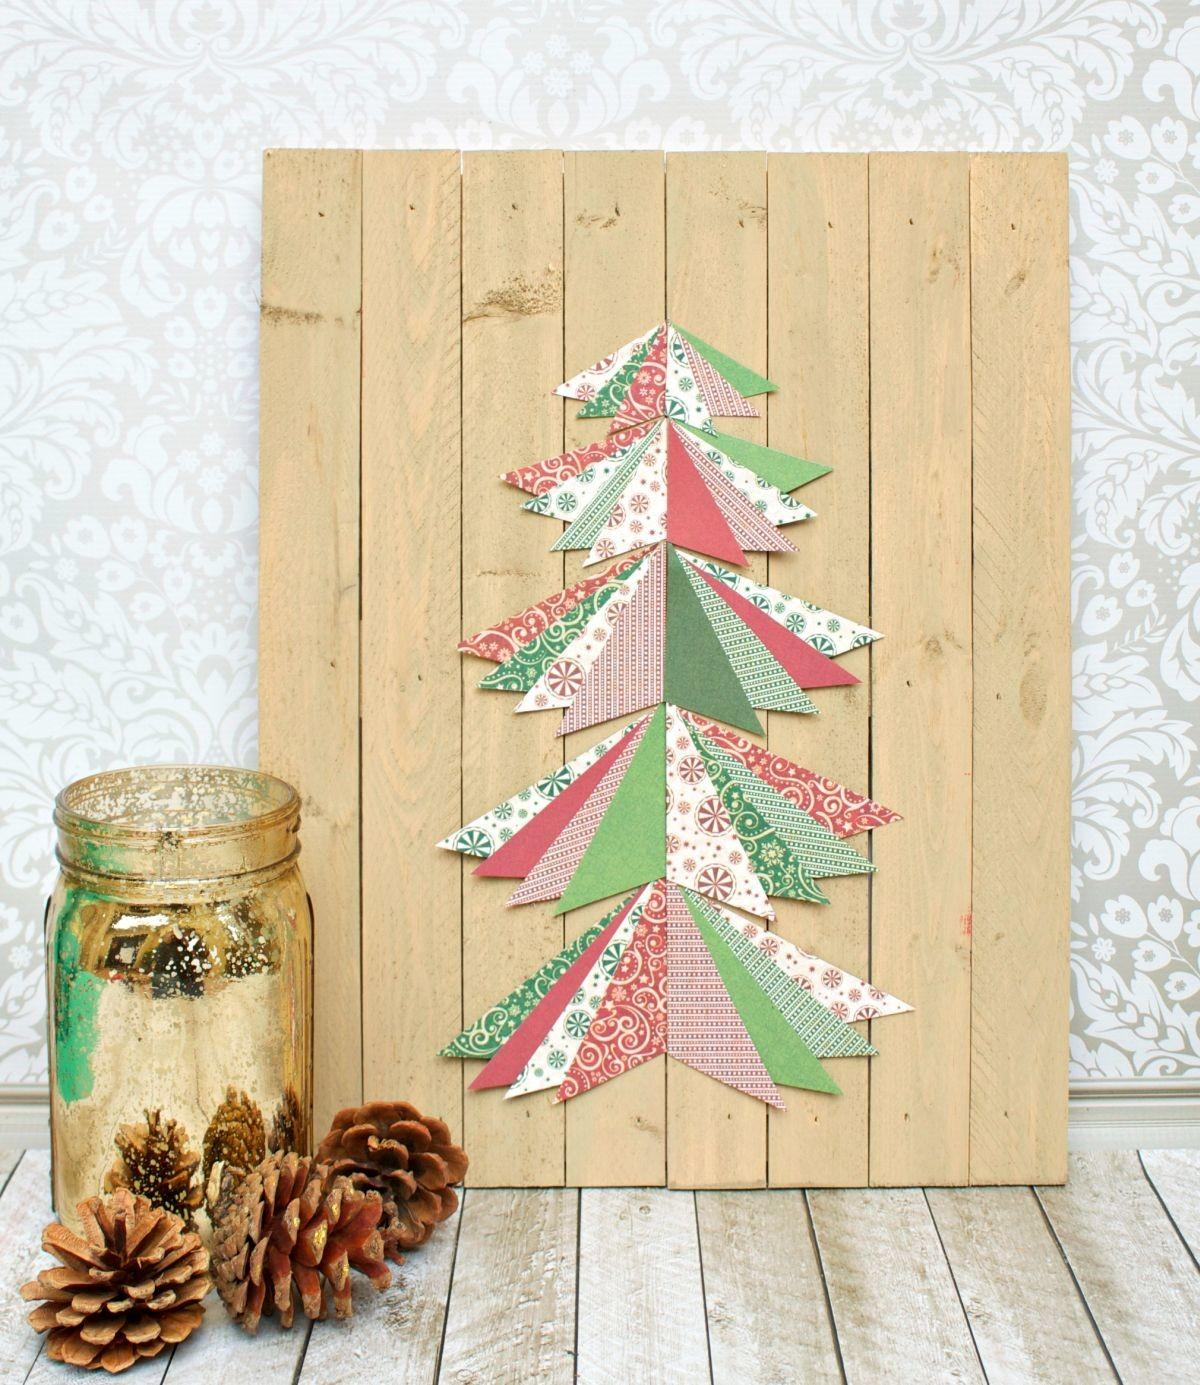 Diy Paper Christmas Wall Decorations Mouthtoears